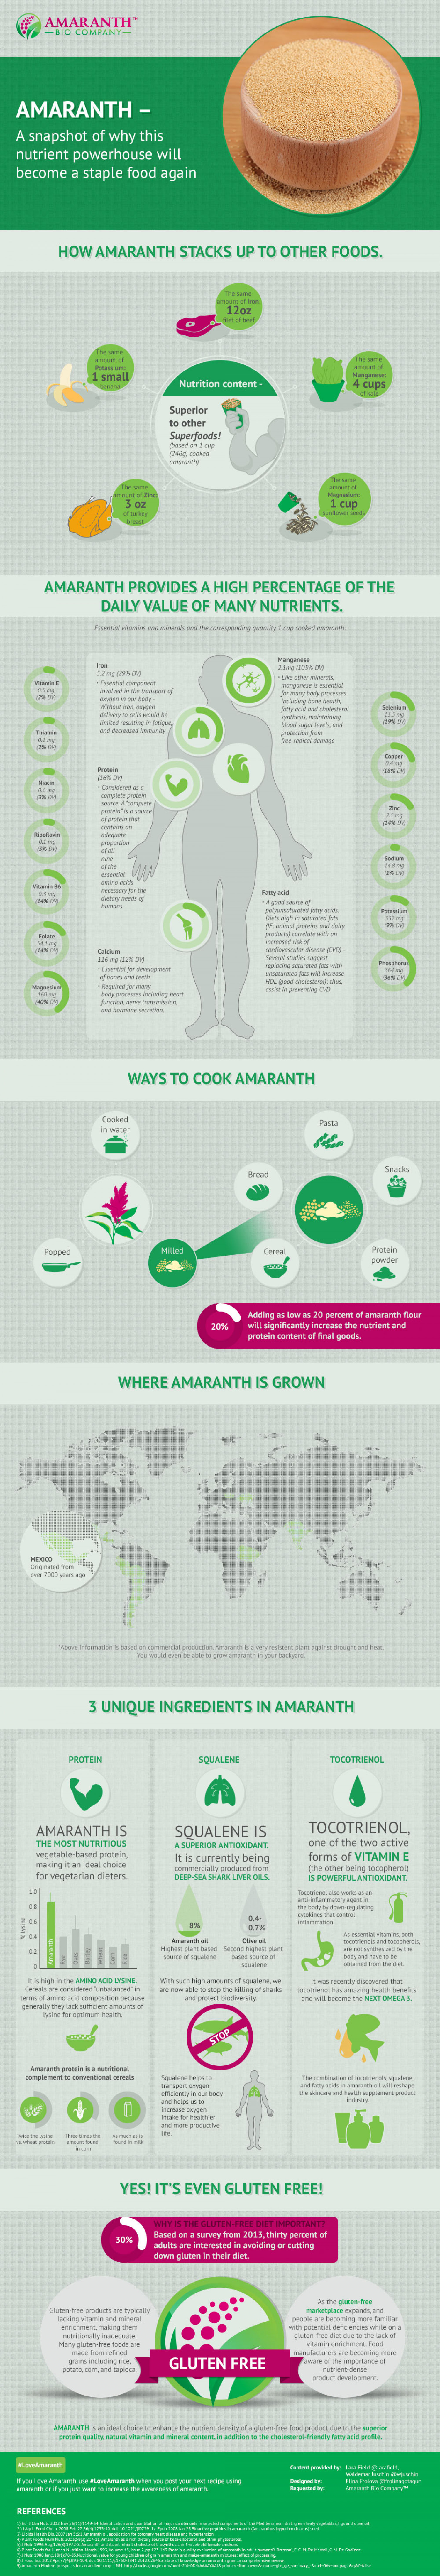 Amaranth Infographic